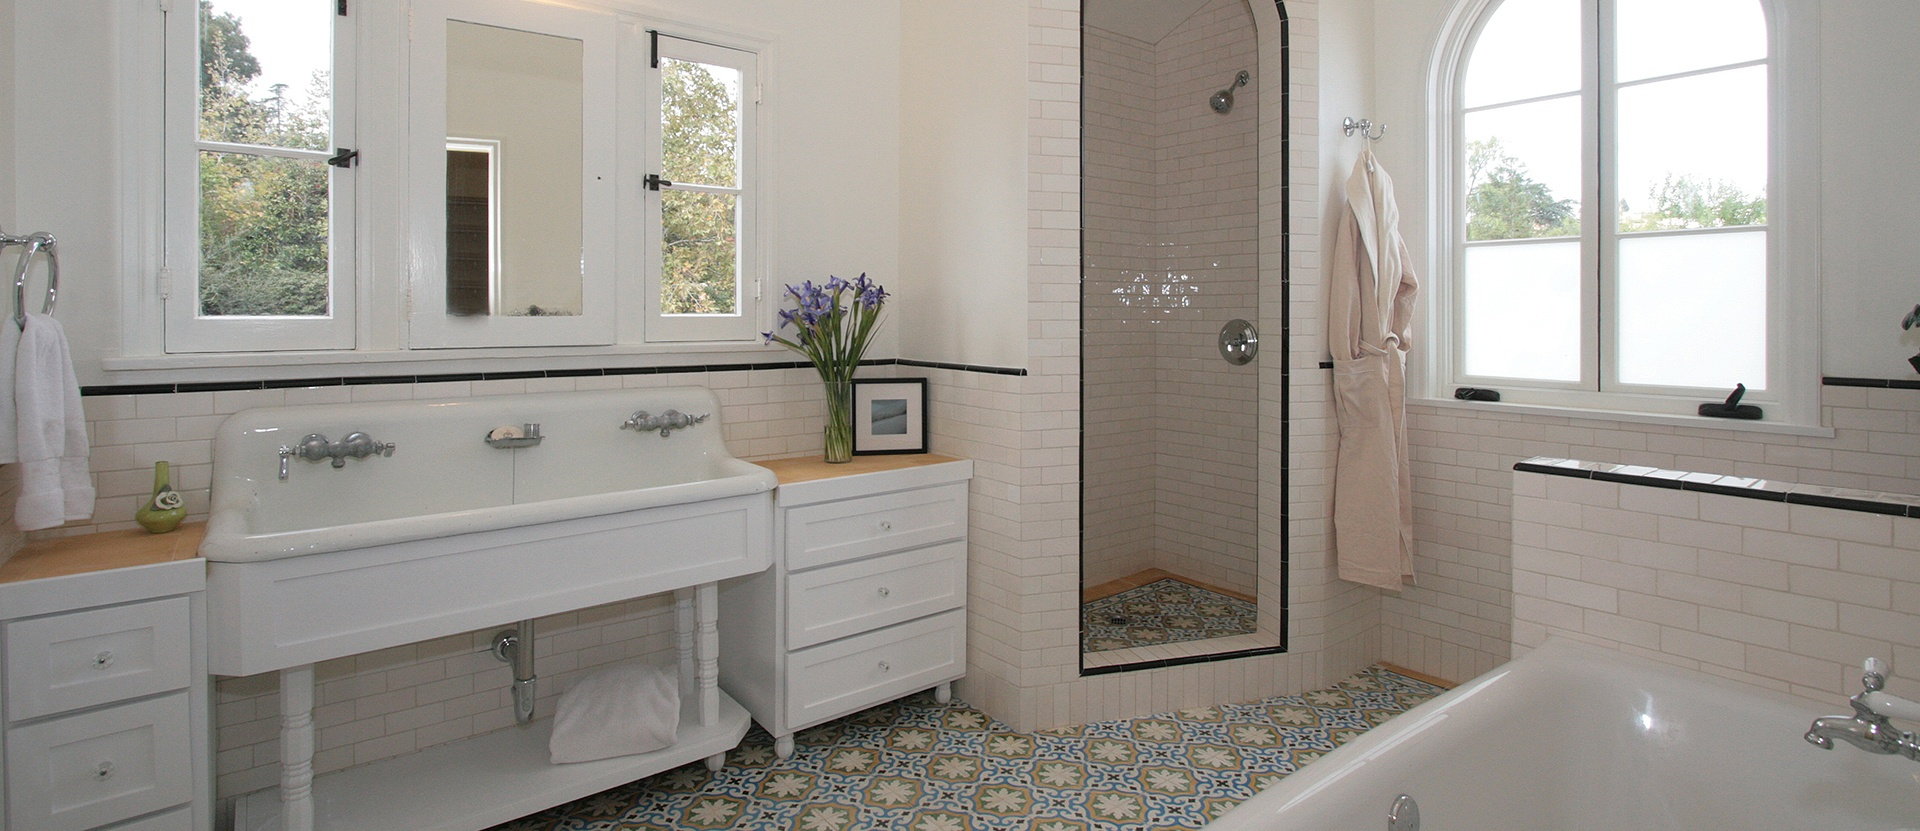 005-los-feliz-bathroom-double-pedestal-sink-cement-tile-custom-cabinets-arched-shower-light-pink-subway-tile